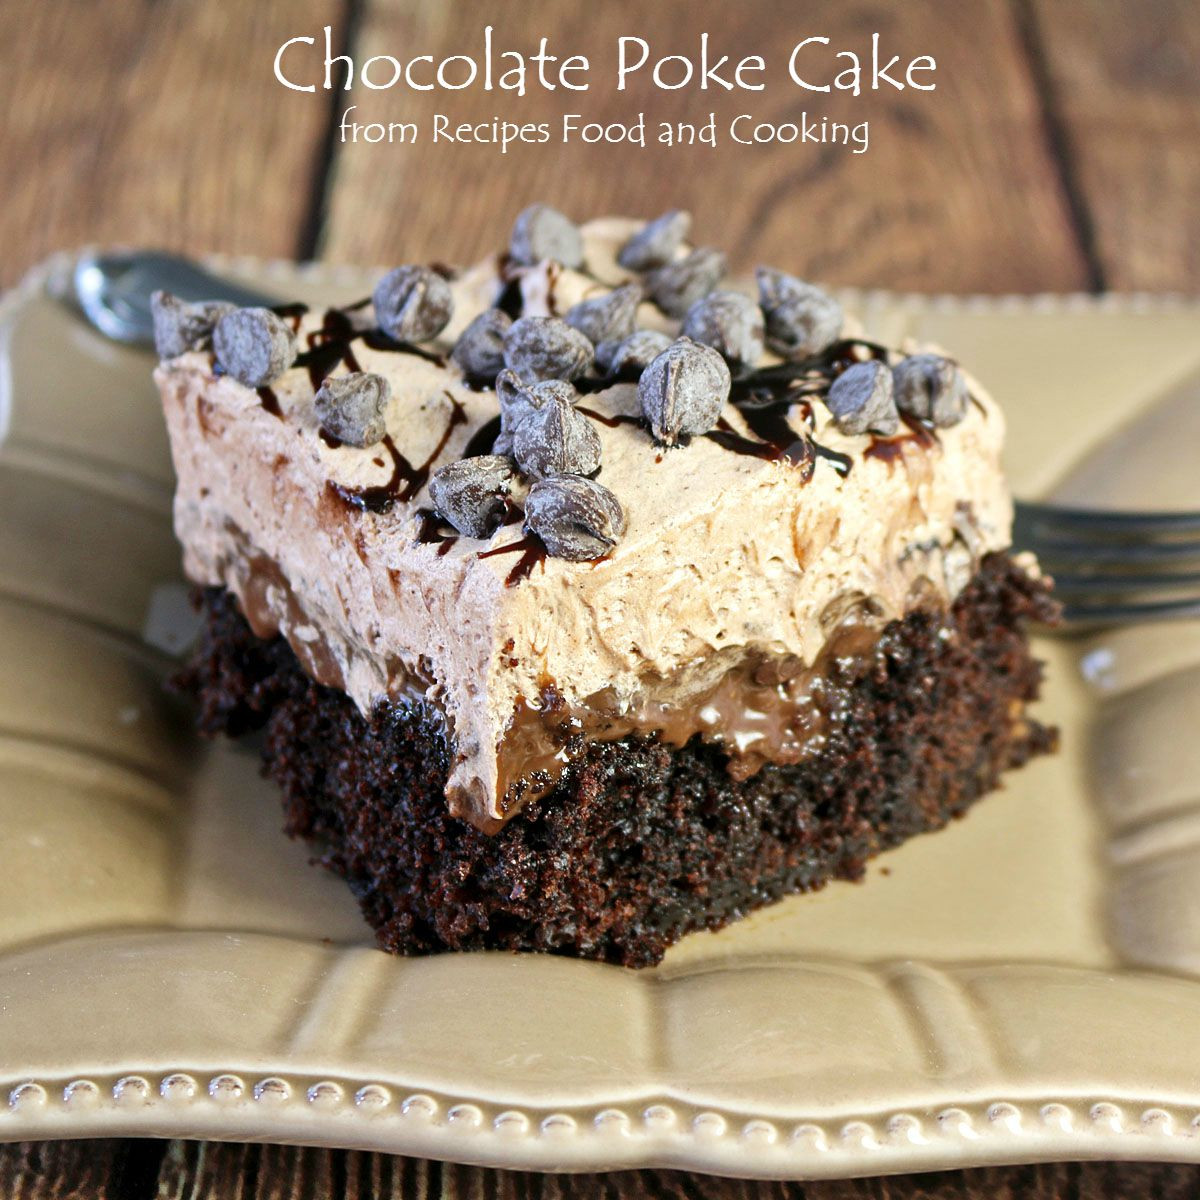 Chocolate Poke Cake  Chocolate Poke Cake Choctoberfest Recipes Food and Cooking